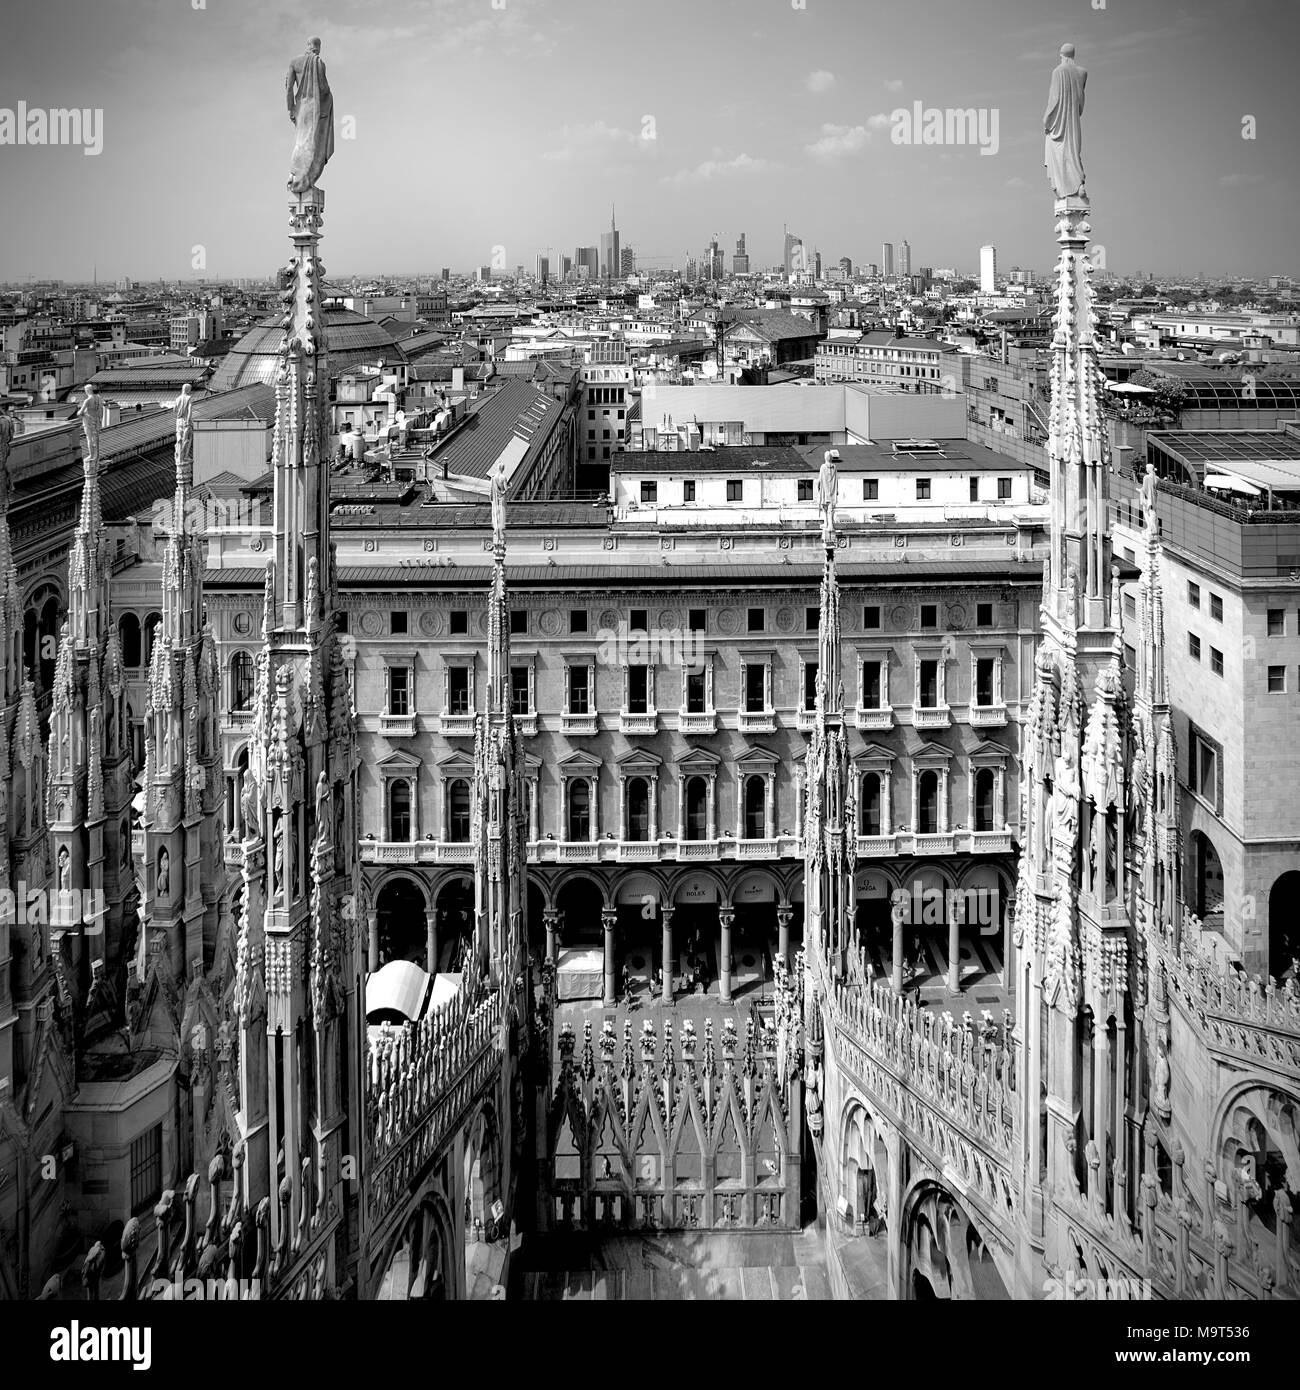 Milan, Lombardy / Italy - 2012/07/04: Roof architecture of the Cathedral of St. Mary Nascente - Duomo Santa Maria Nascente di Milano at Piazza del Duo - Stock Image